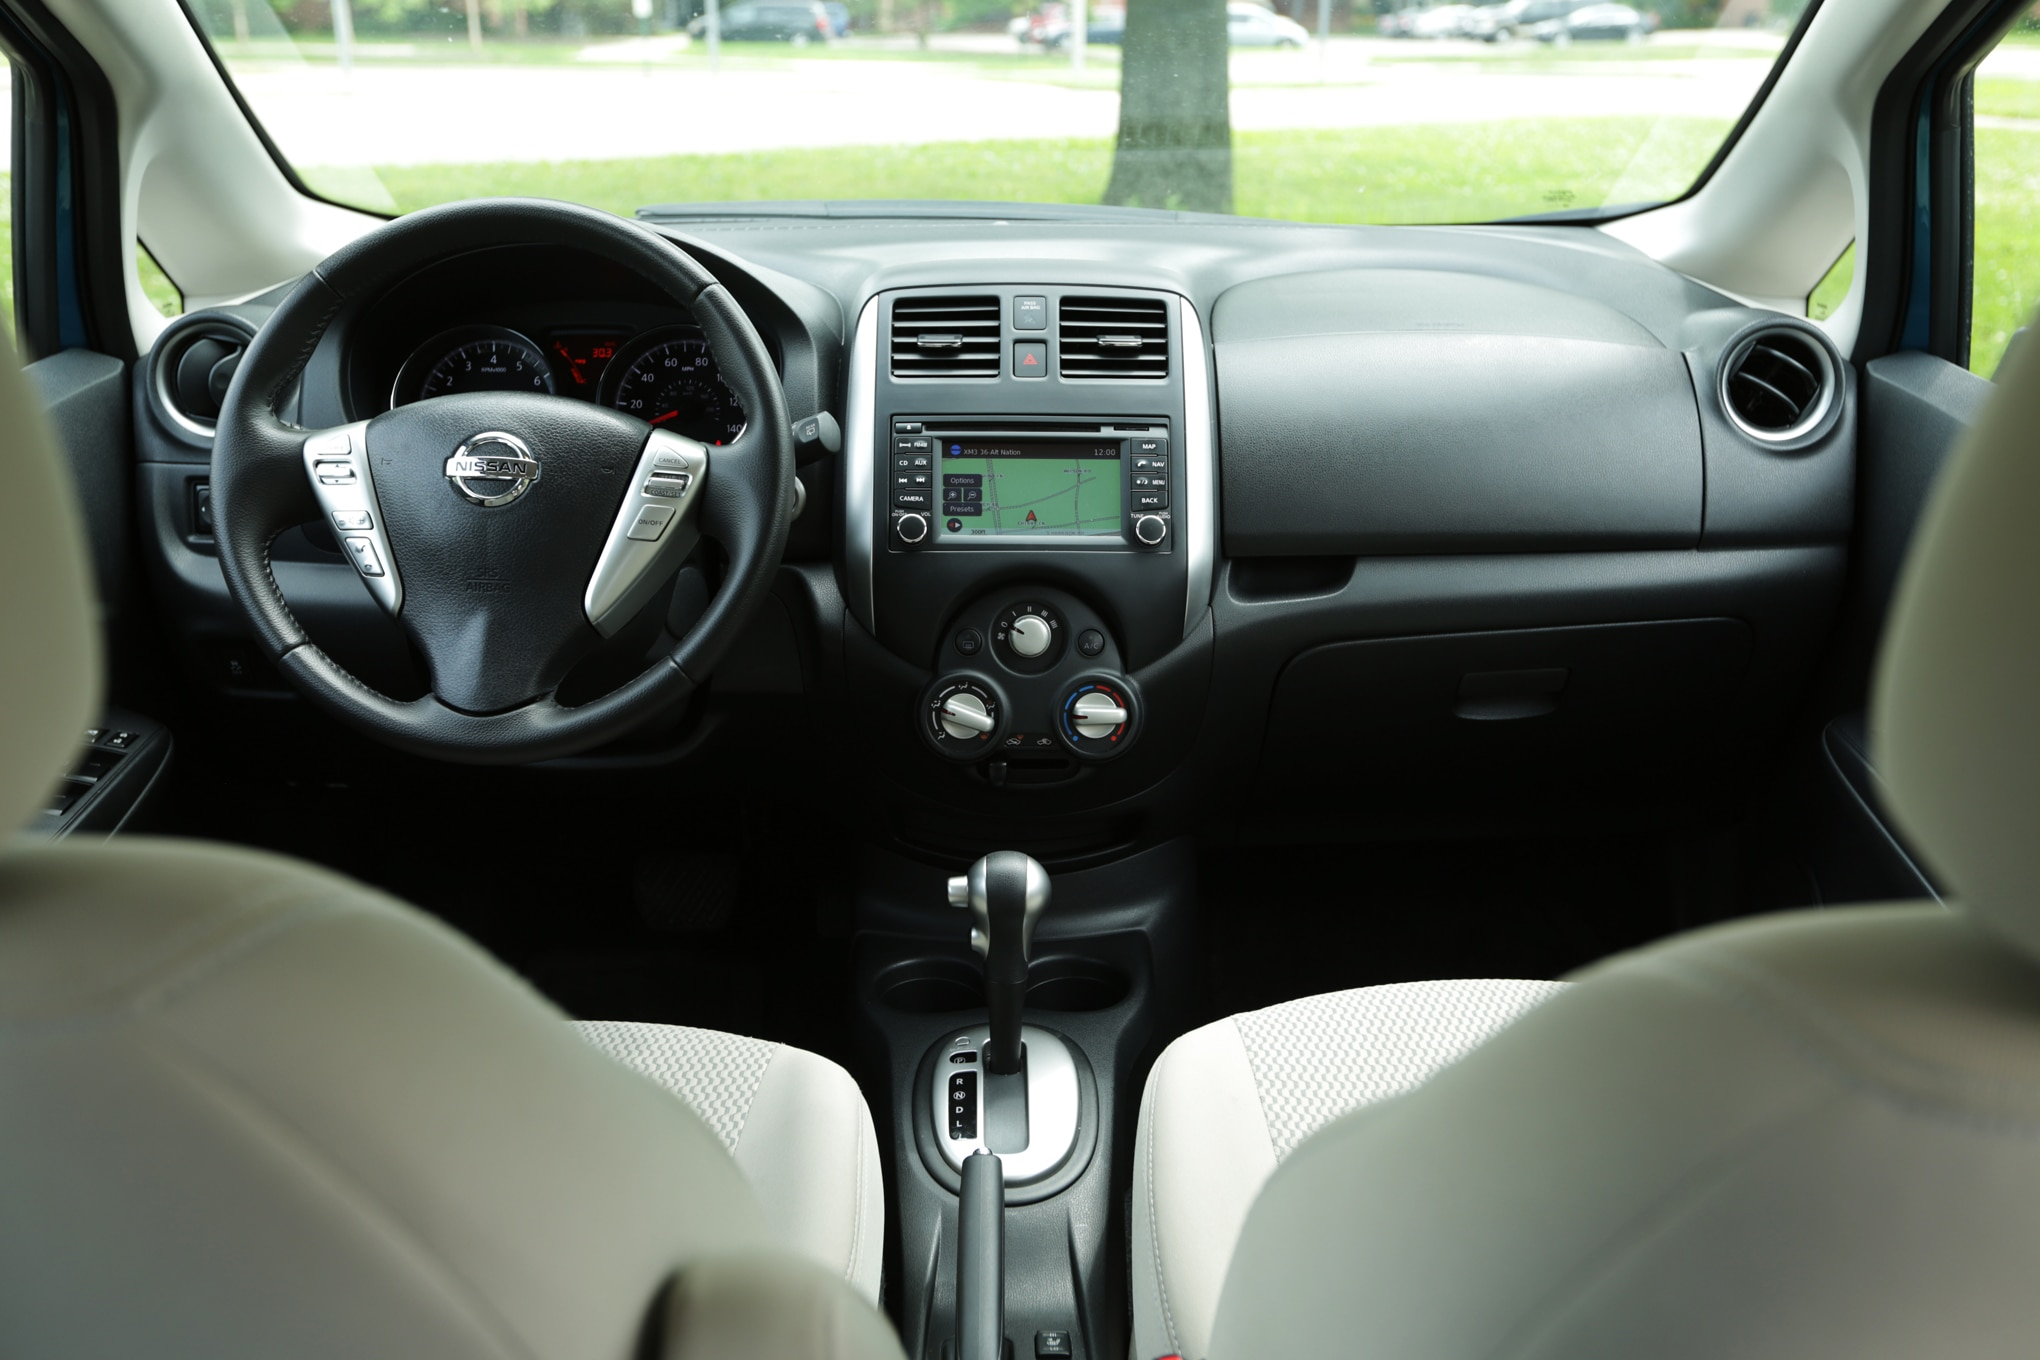 2015 honda fit ex l vs 2014 nissan versa note sl comparison. Black Bedroom Furniture Sets. Home Design Ideas